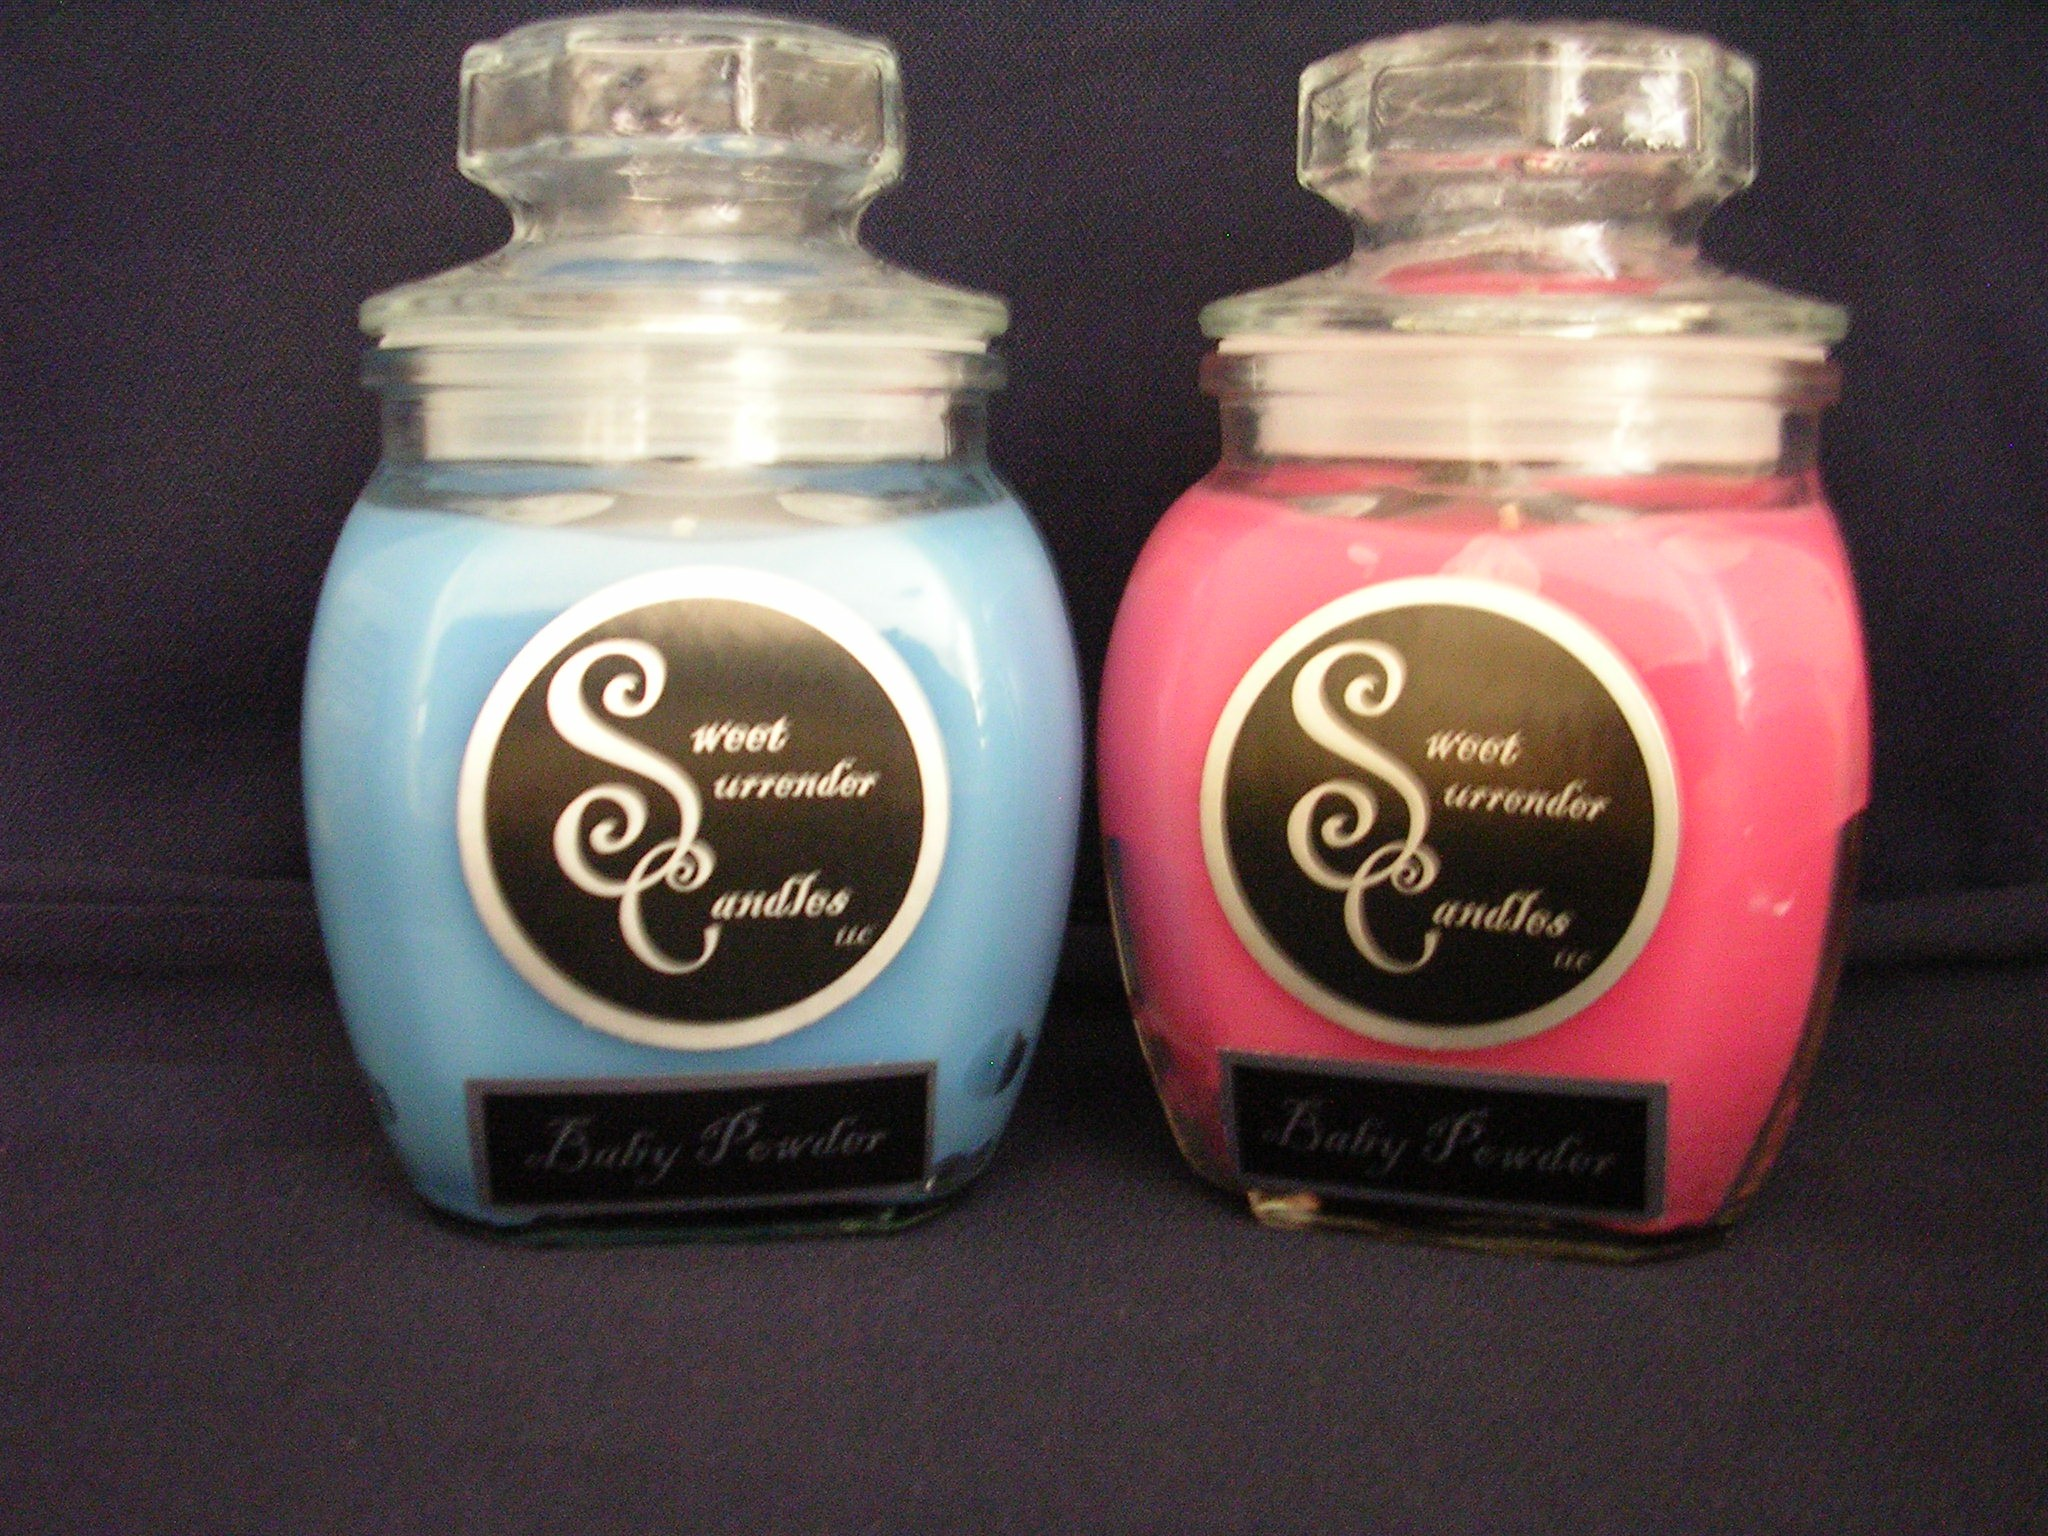 Sweet Surrender Candles